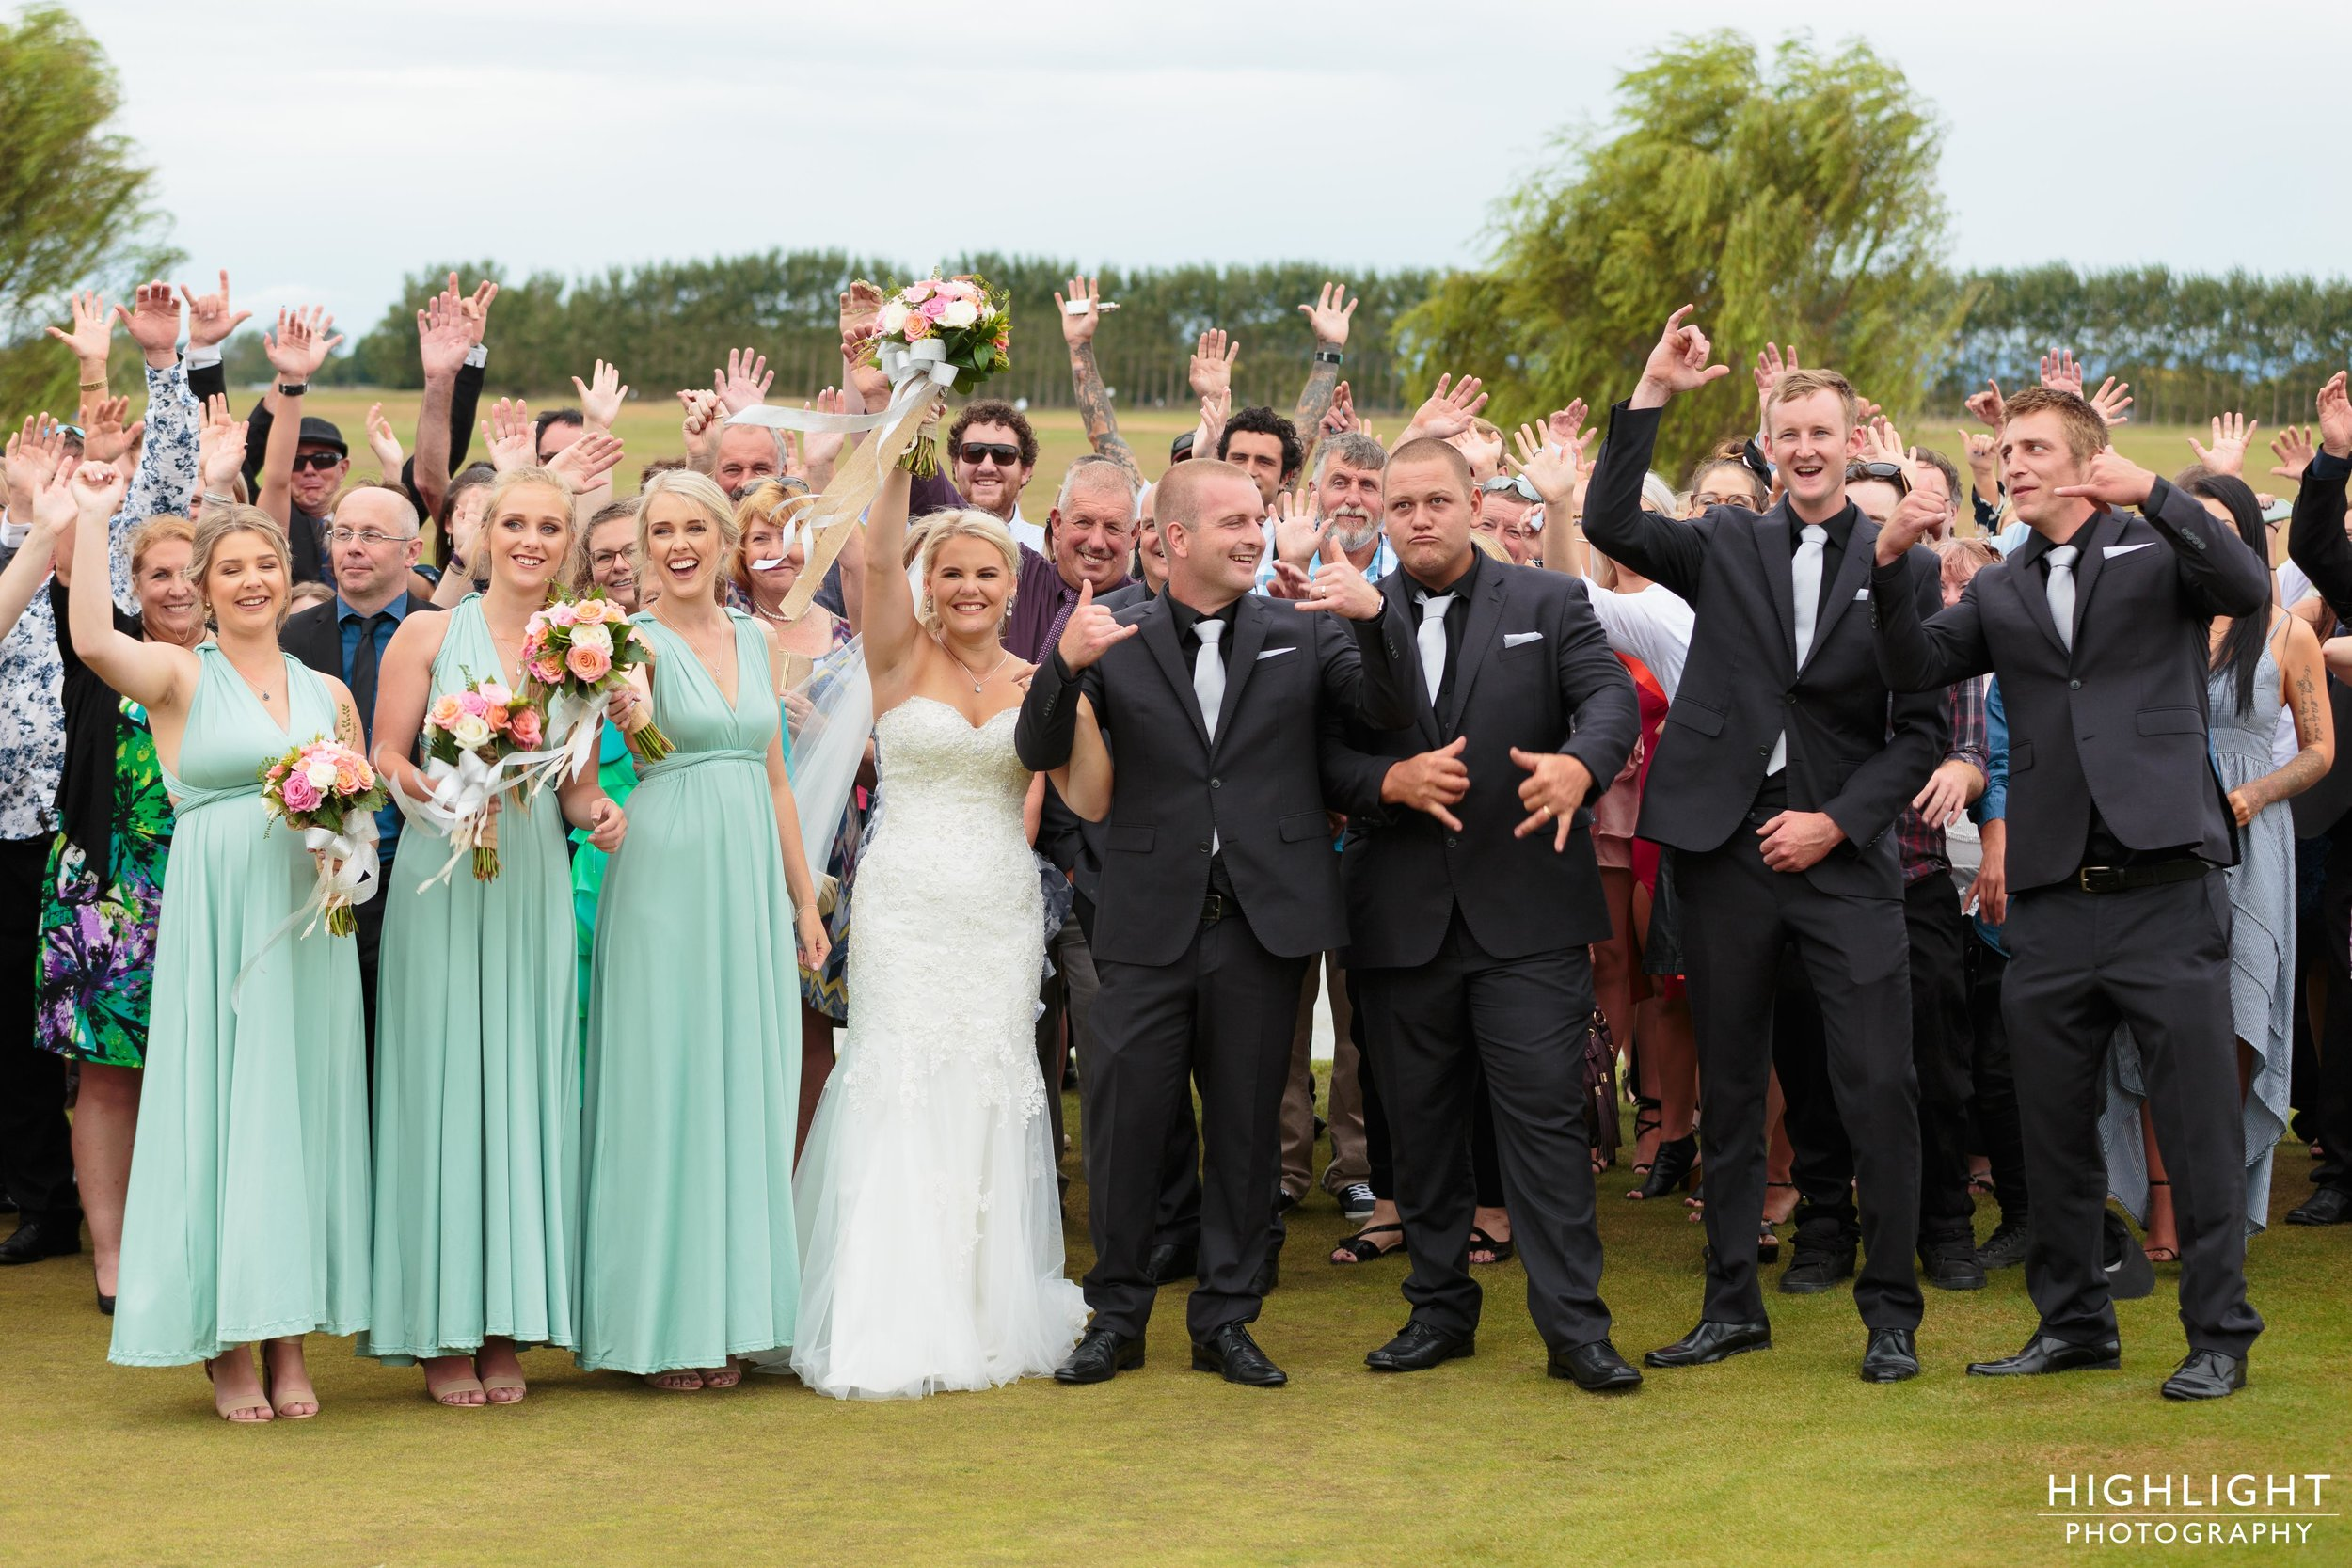 highlight-wedding-photography-new-zealand-cs-orlando-country-wedding-palmerston-north-106.jpg